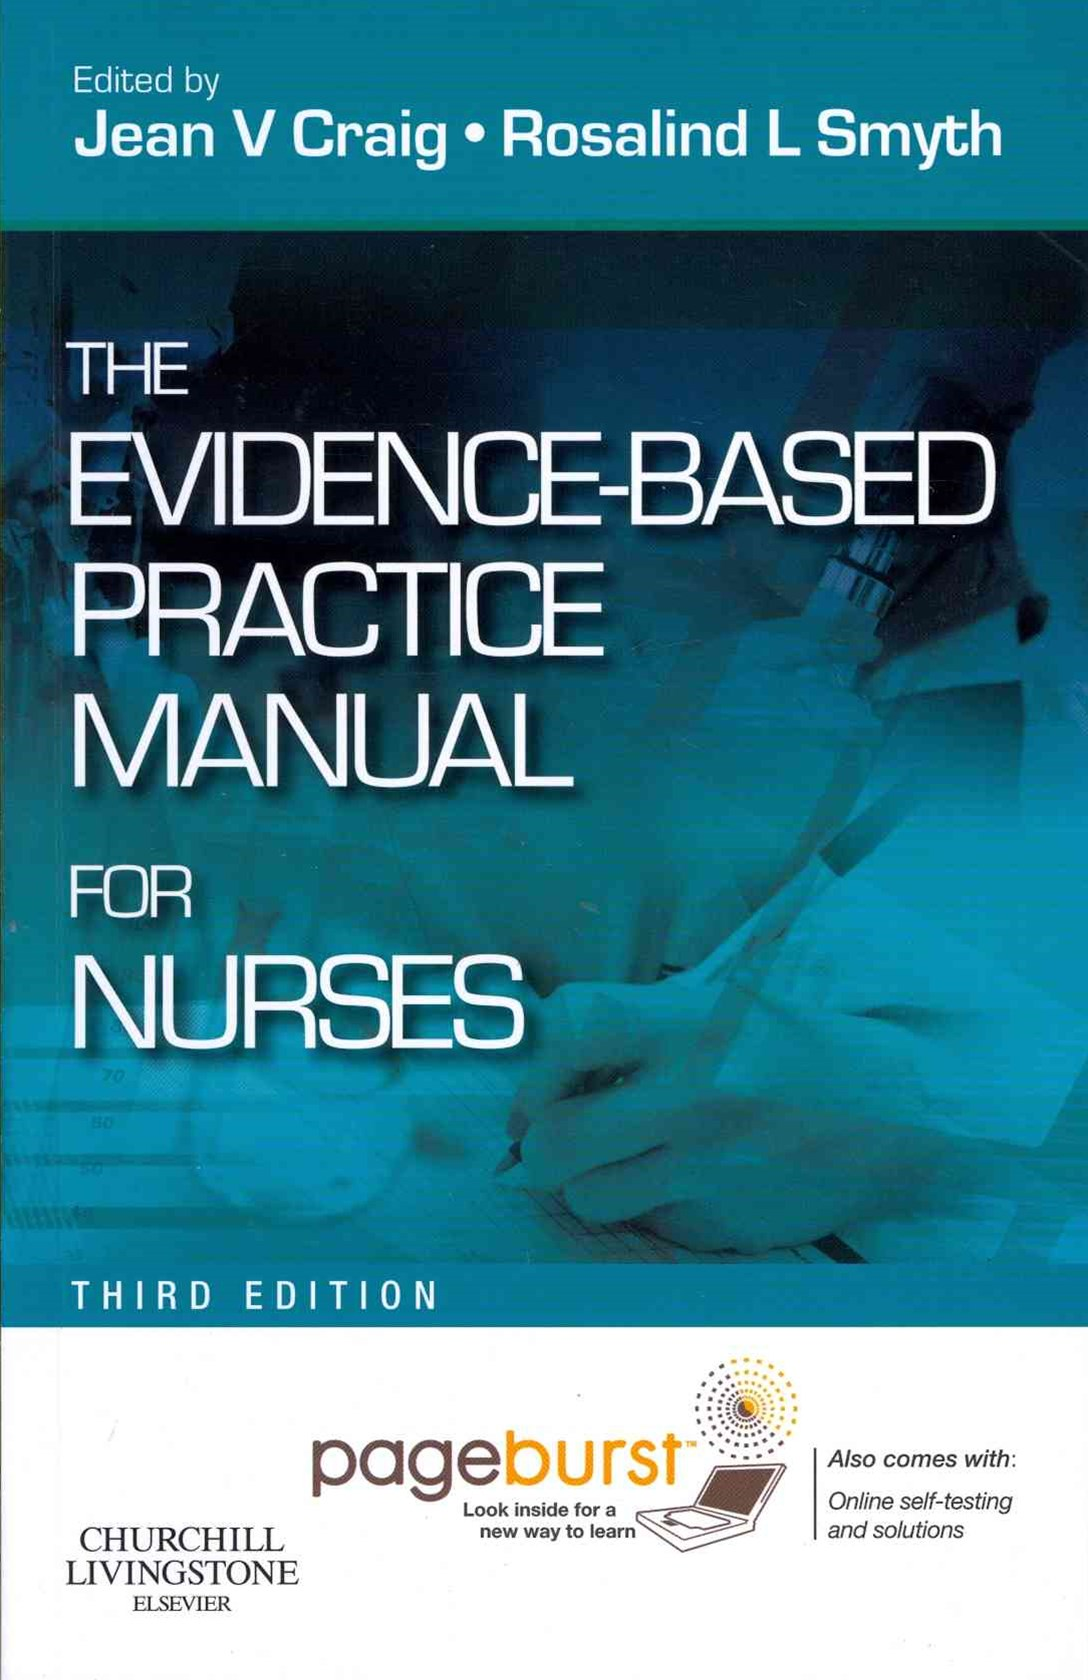 The Evidence-Based Practice Manual for Nurses